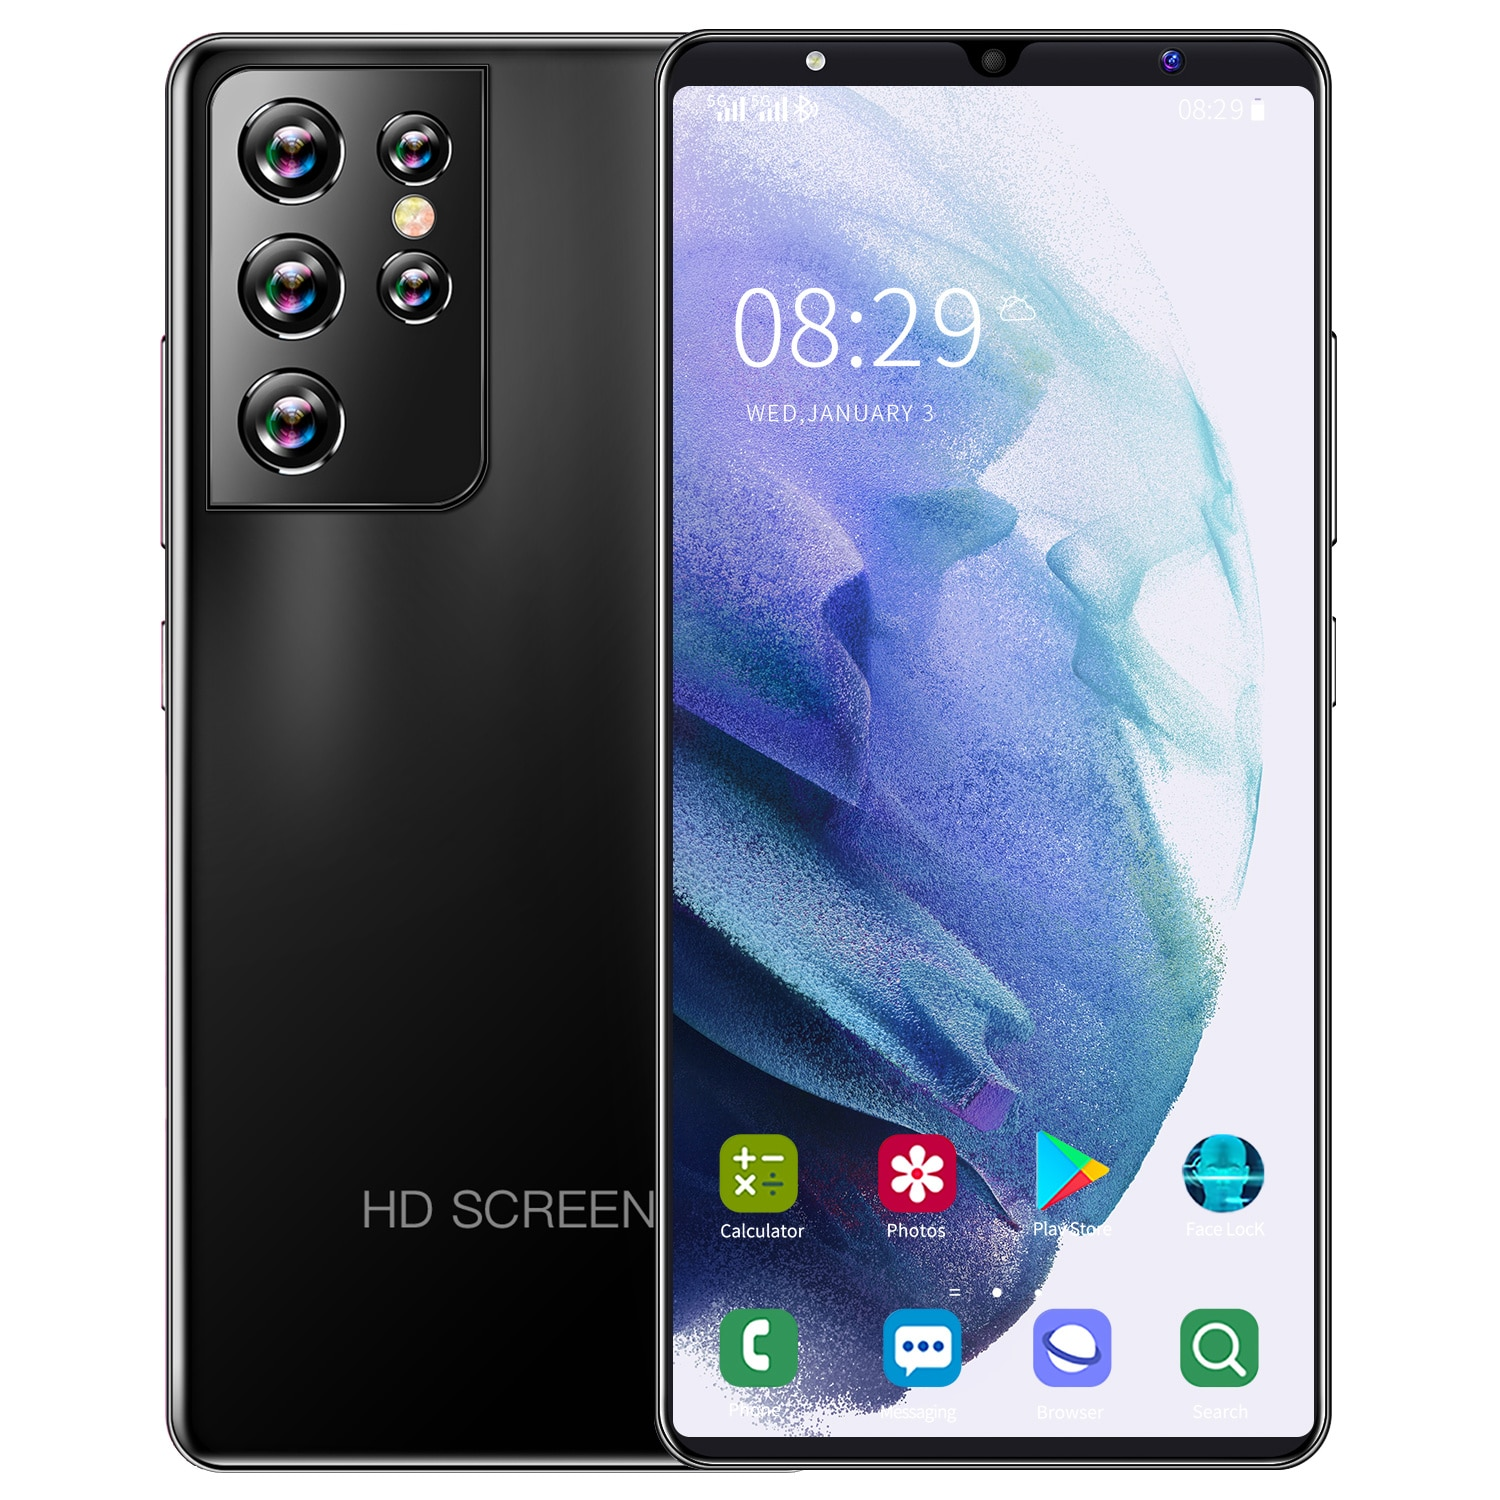 Global Version Galay Mobile Phones S21 Ultra 5.0 Smartphone 6GB 128GB 5000mAh CellPhone Android Dual Sim Face Unlocked Phone enlarge